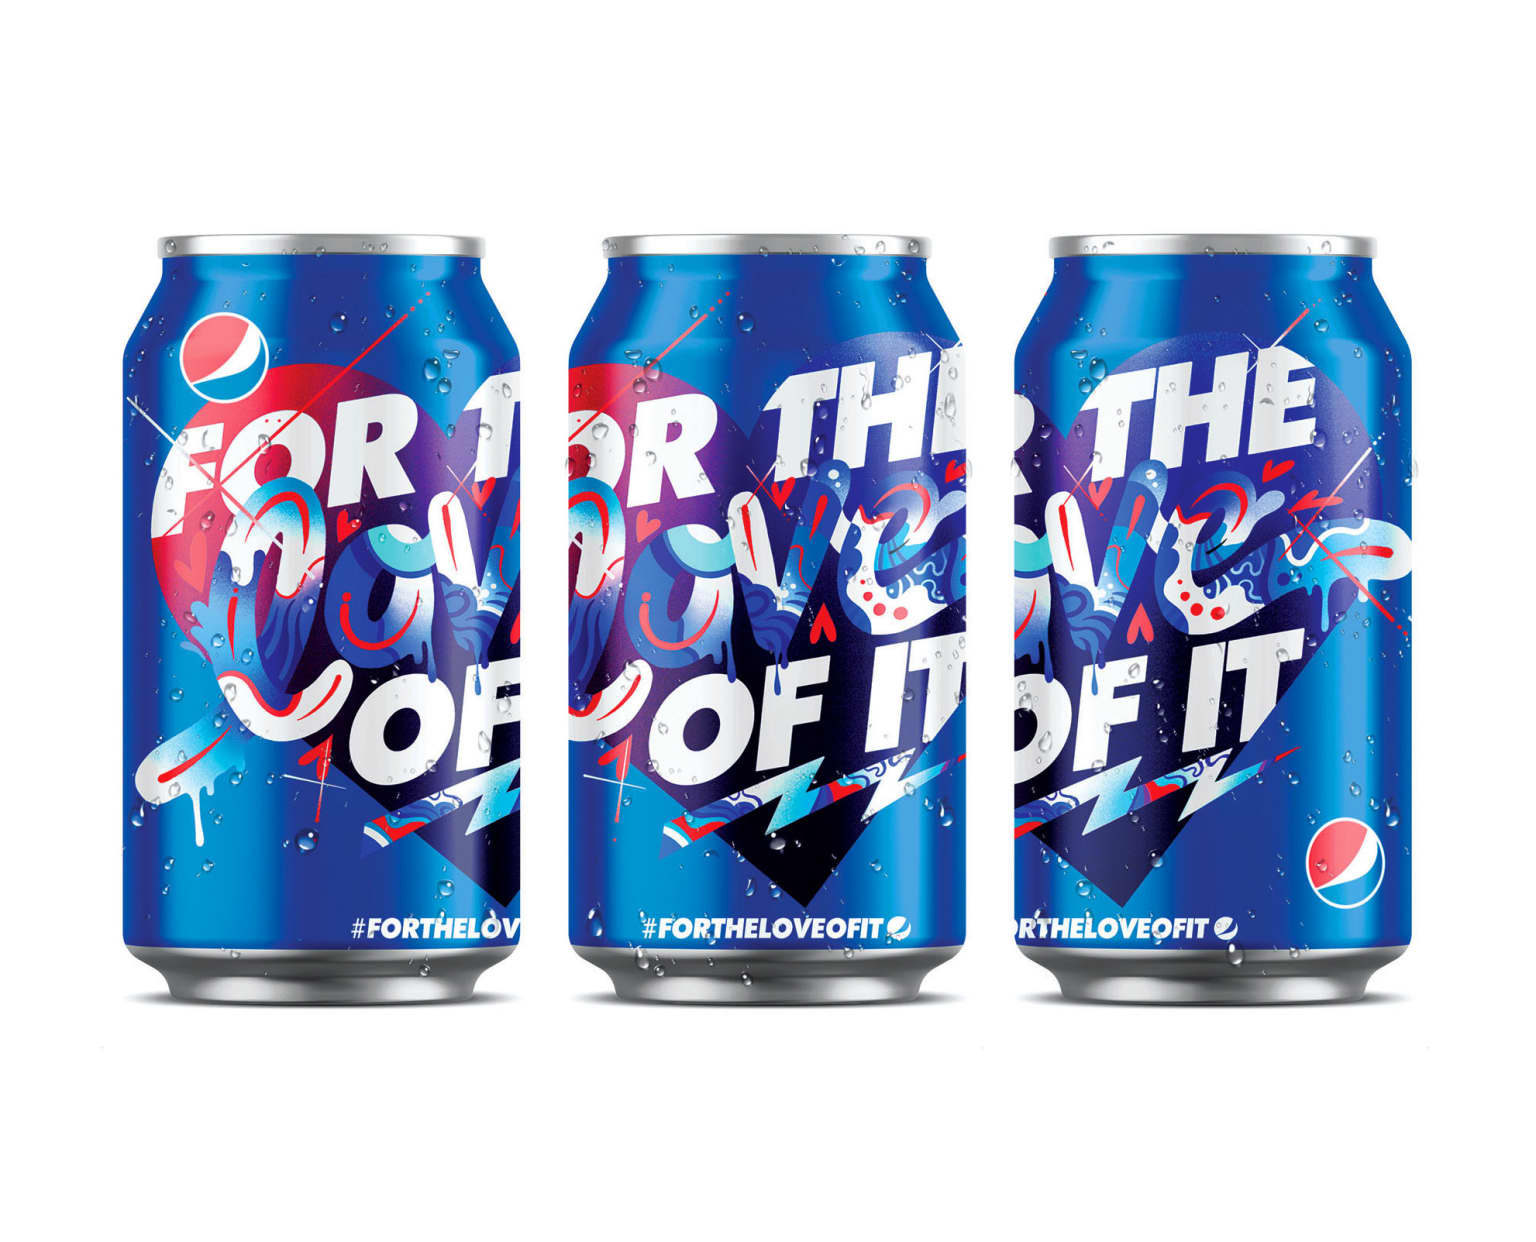 PEPSI 'FOR THE LOVE OF IT'